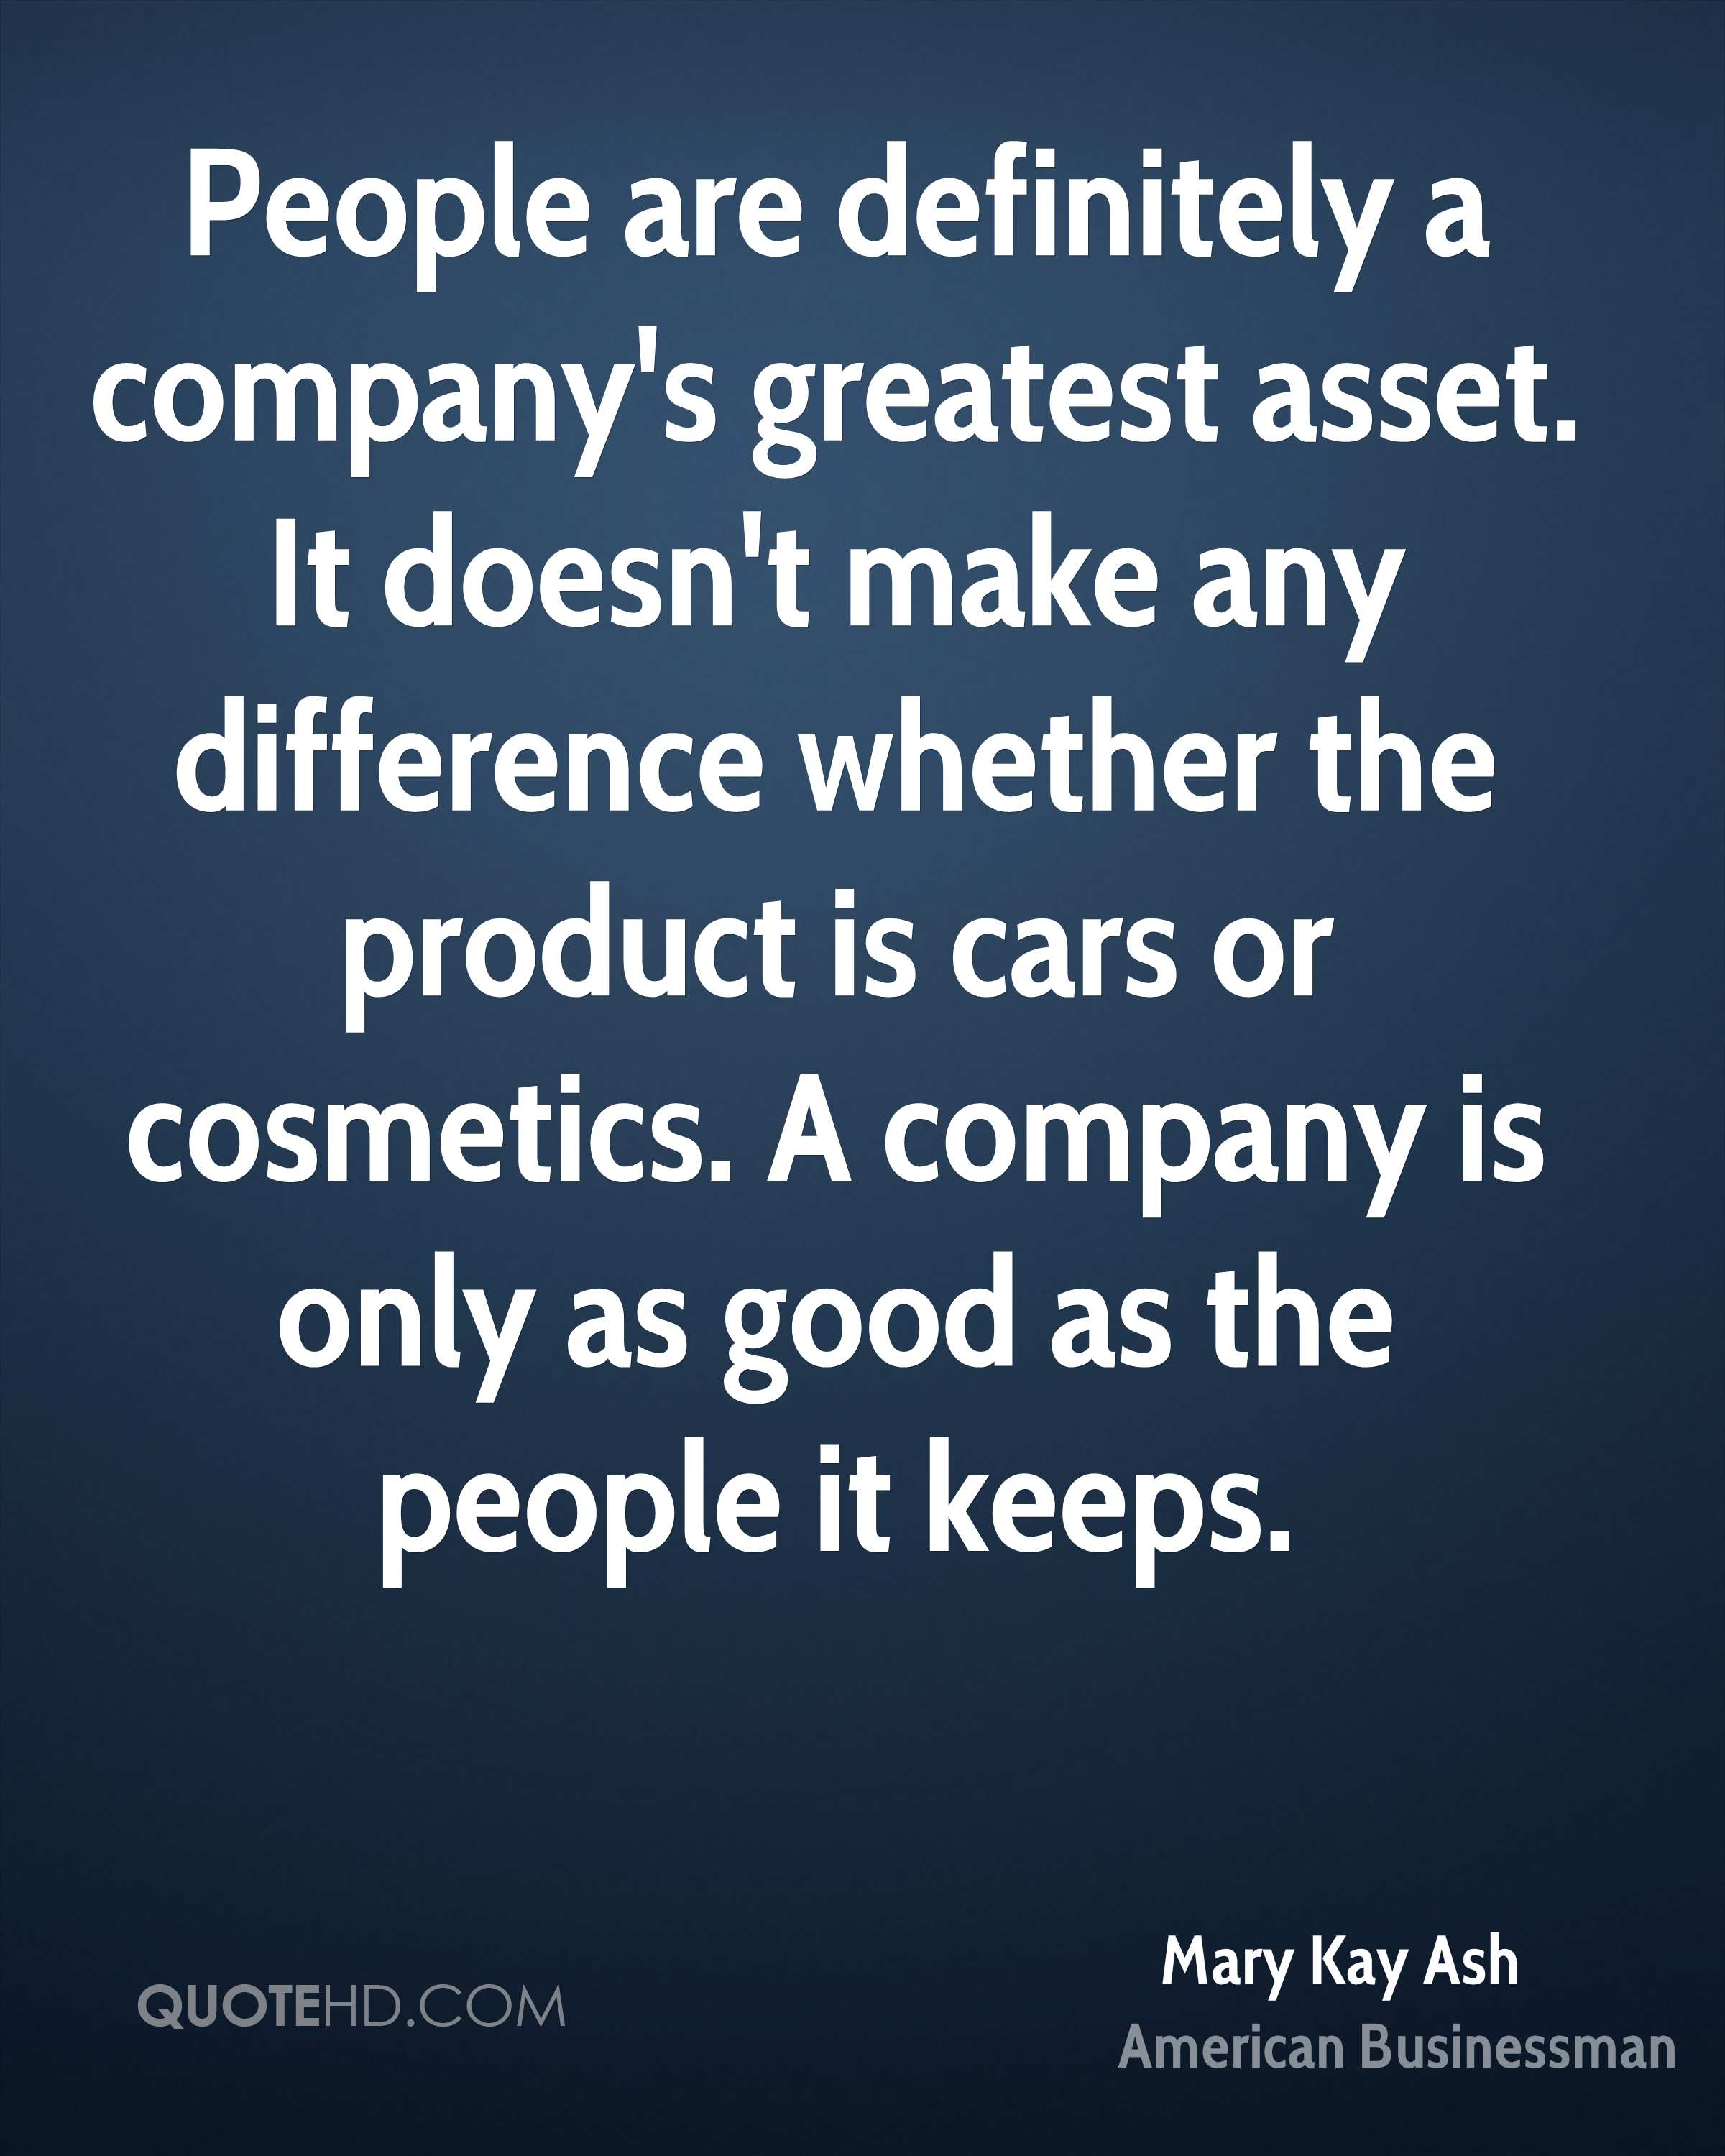 People are definitely a company's greatest asset. It doesn't make any difference whether the product is cars or cosmetics. A company is only as good as the people it keeps.